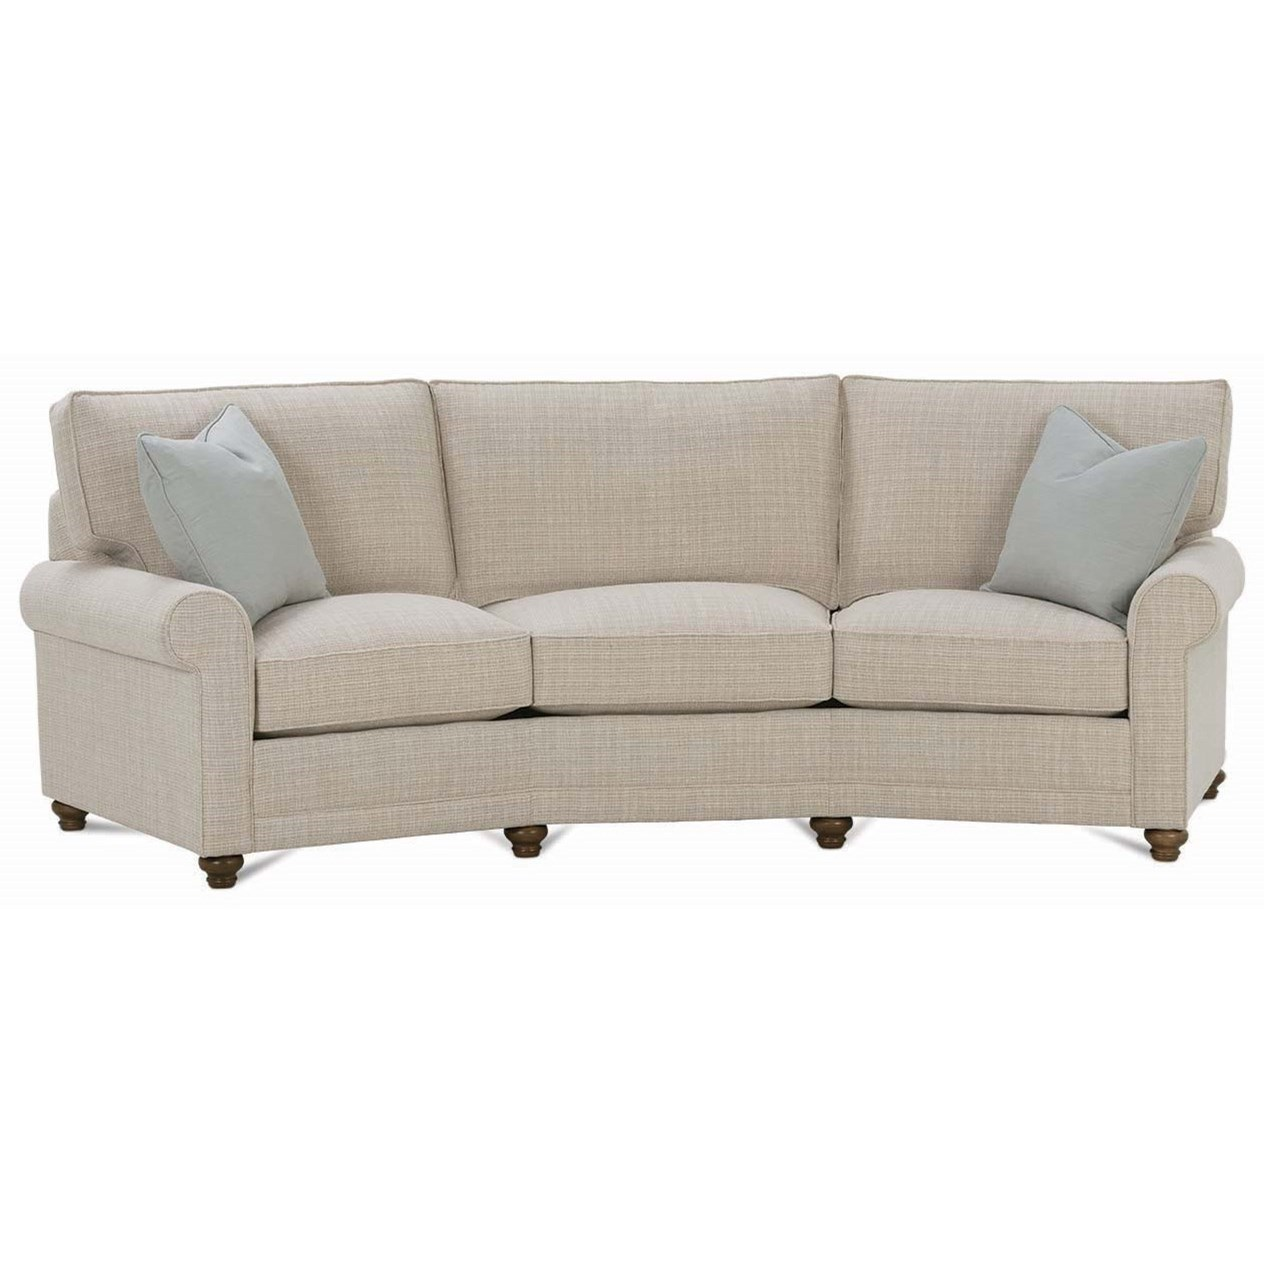 My Style I Customizable Conversation Sofa by Rowe at Baer's Furniture